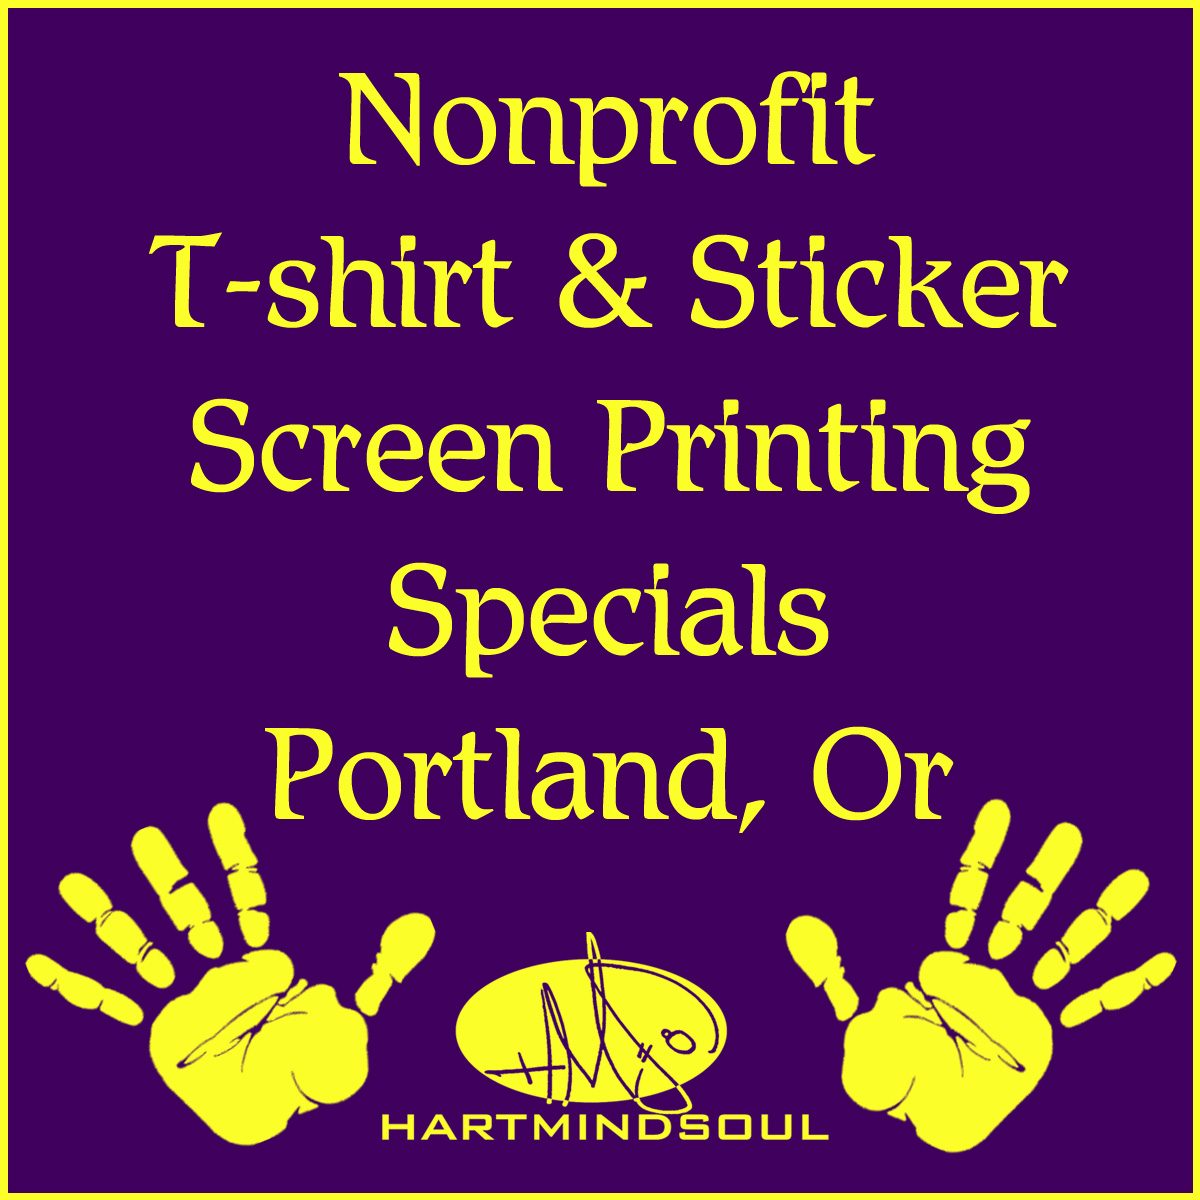 Nonprofit printing specials portland hms nation hart for T shirt printing for non profit organizations